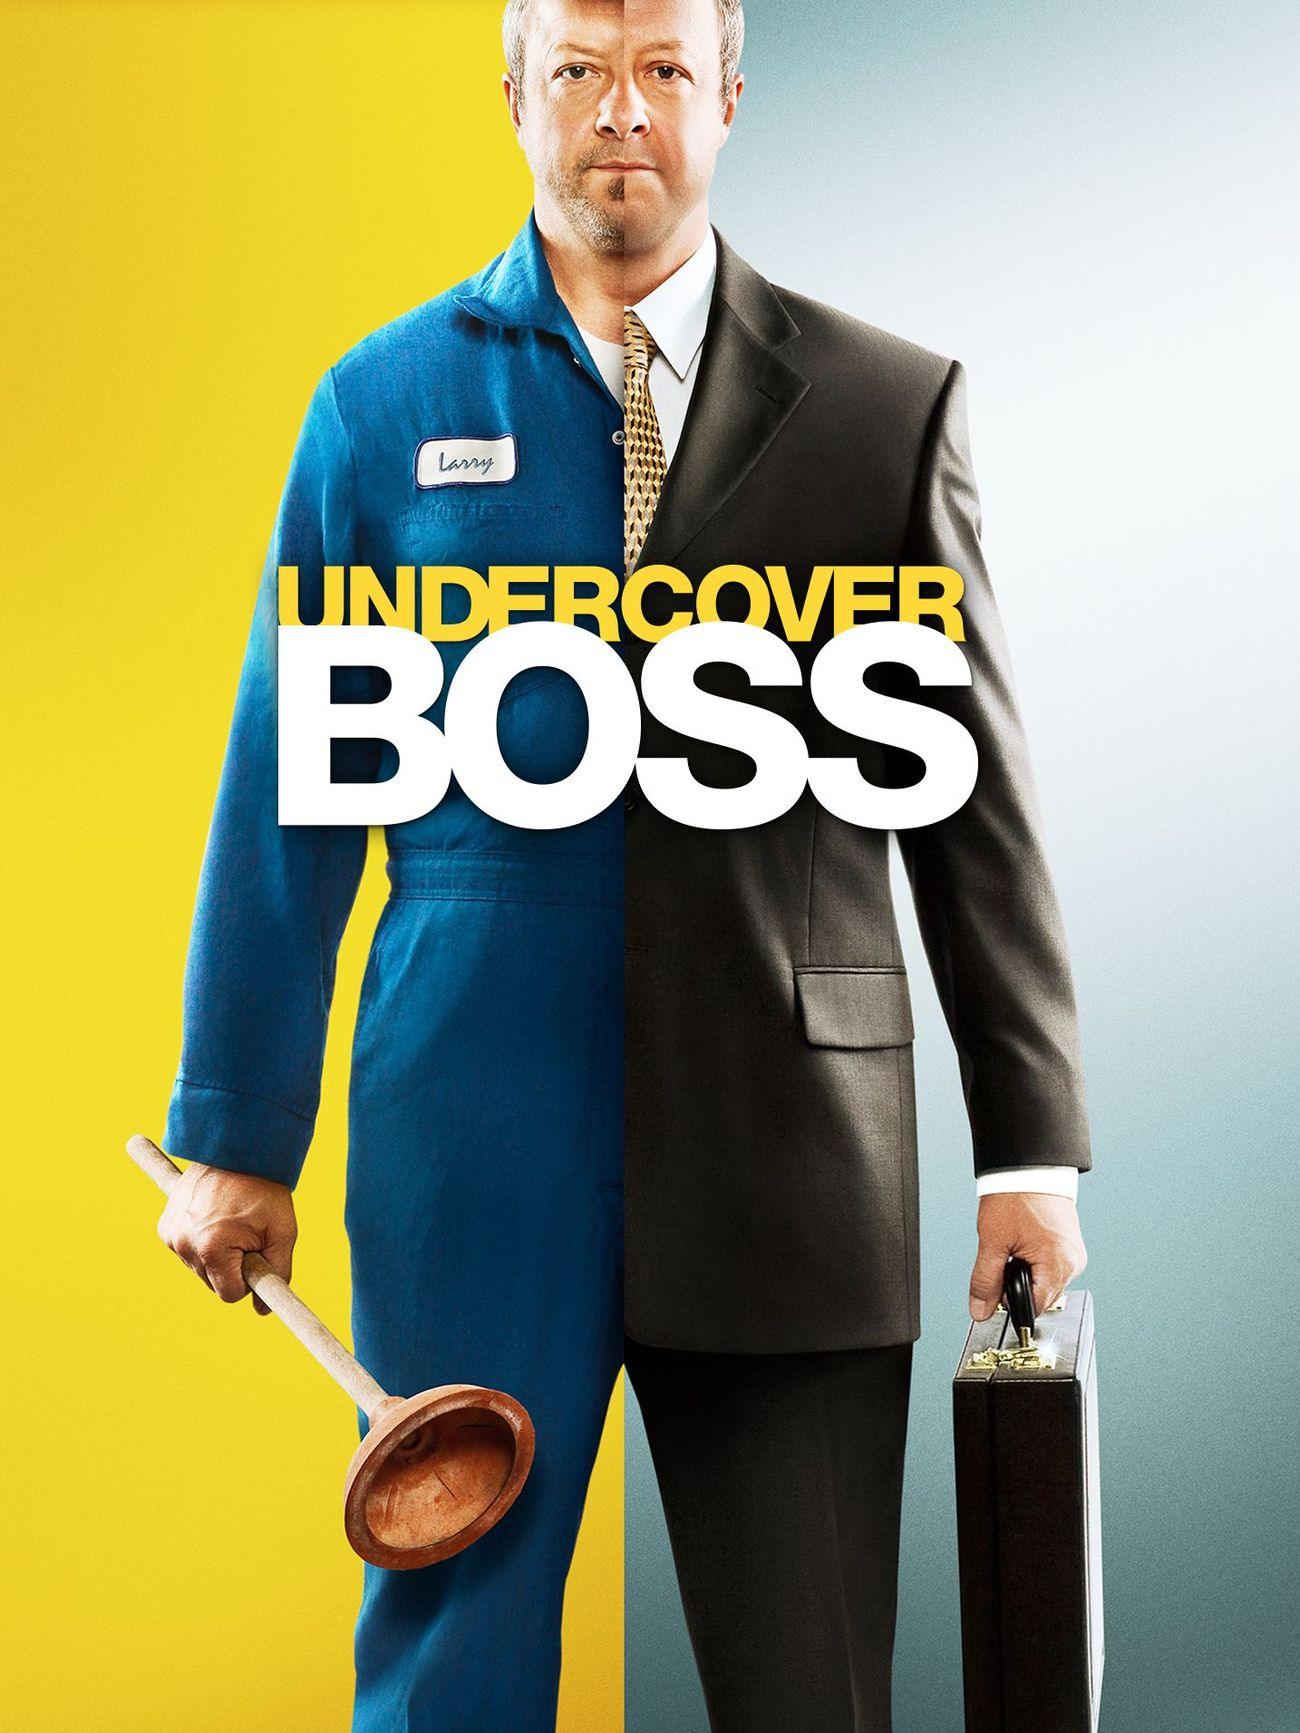 Undercover Boss Season 10 Episode 6 Subtitle (English Srt) Download